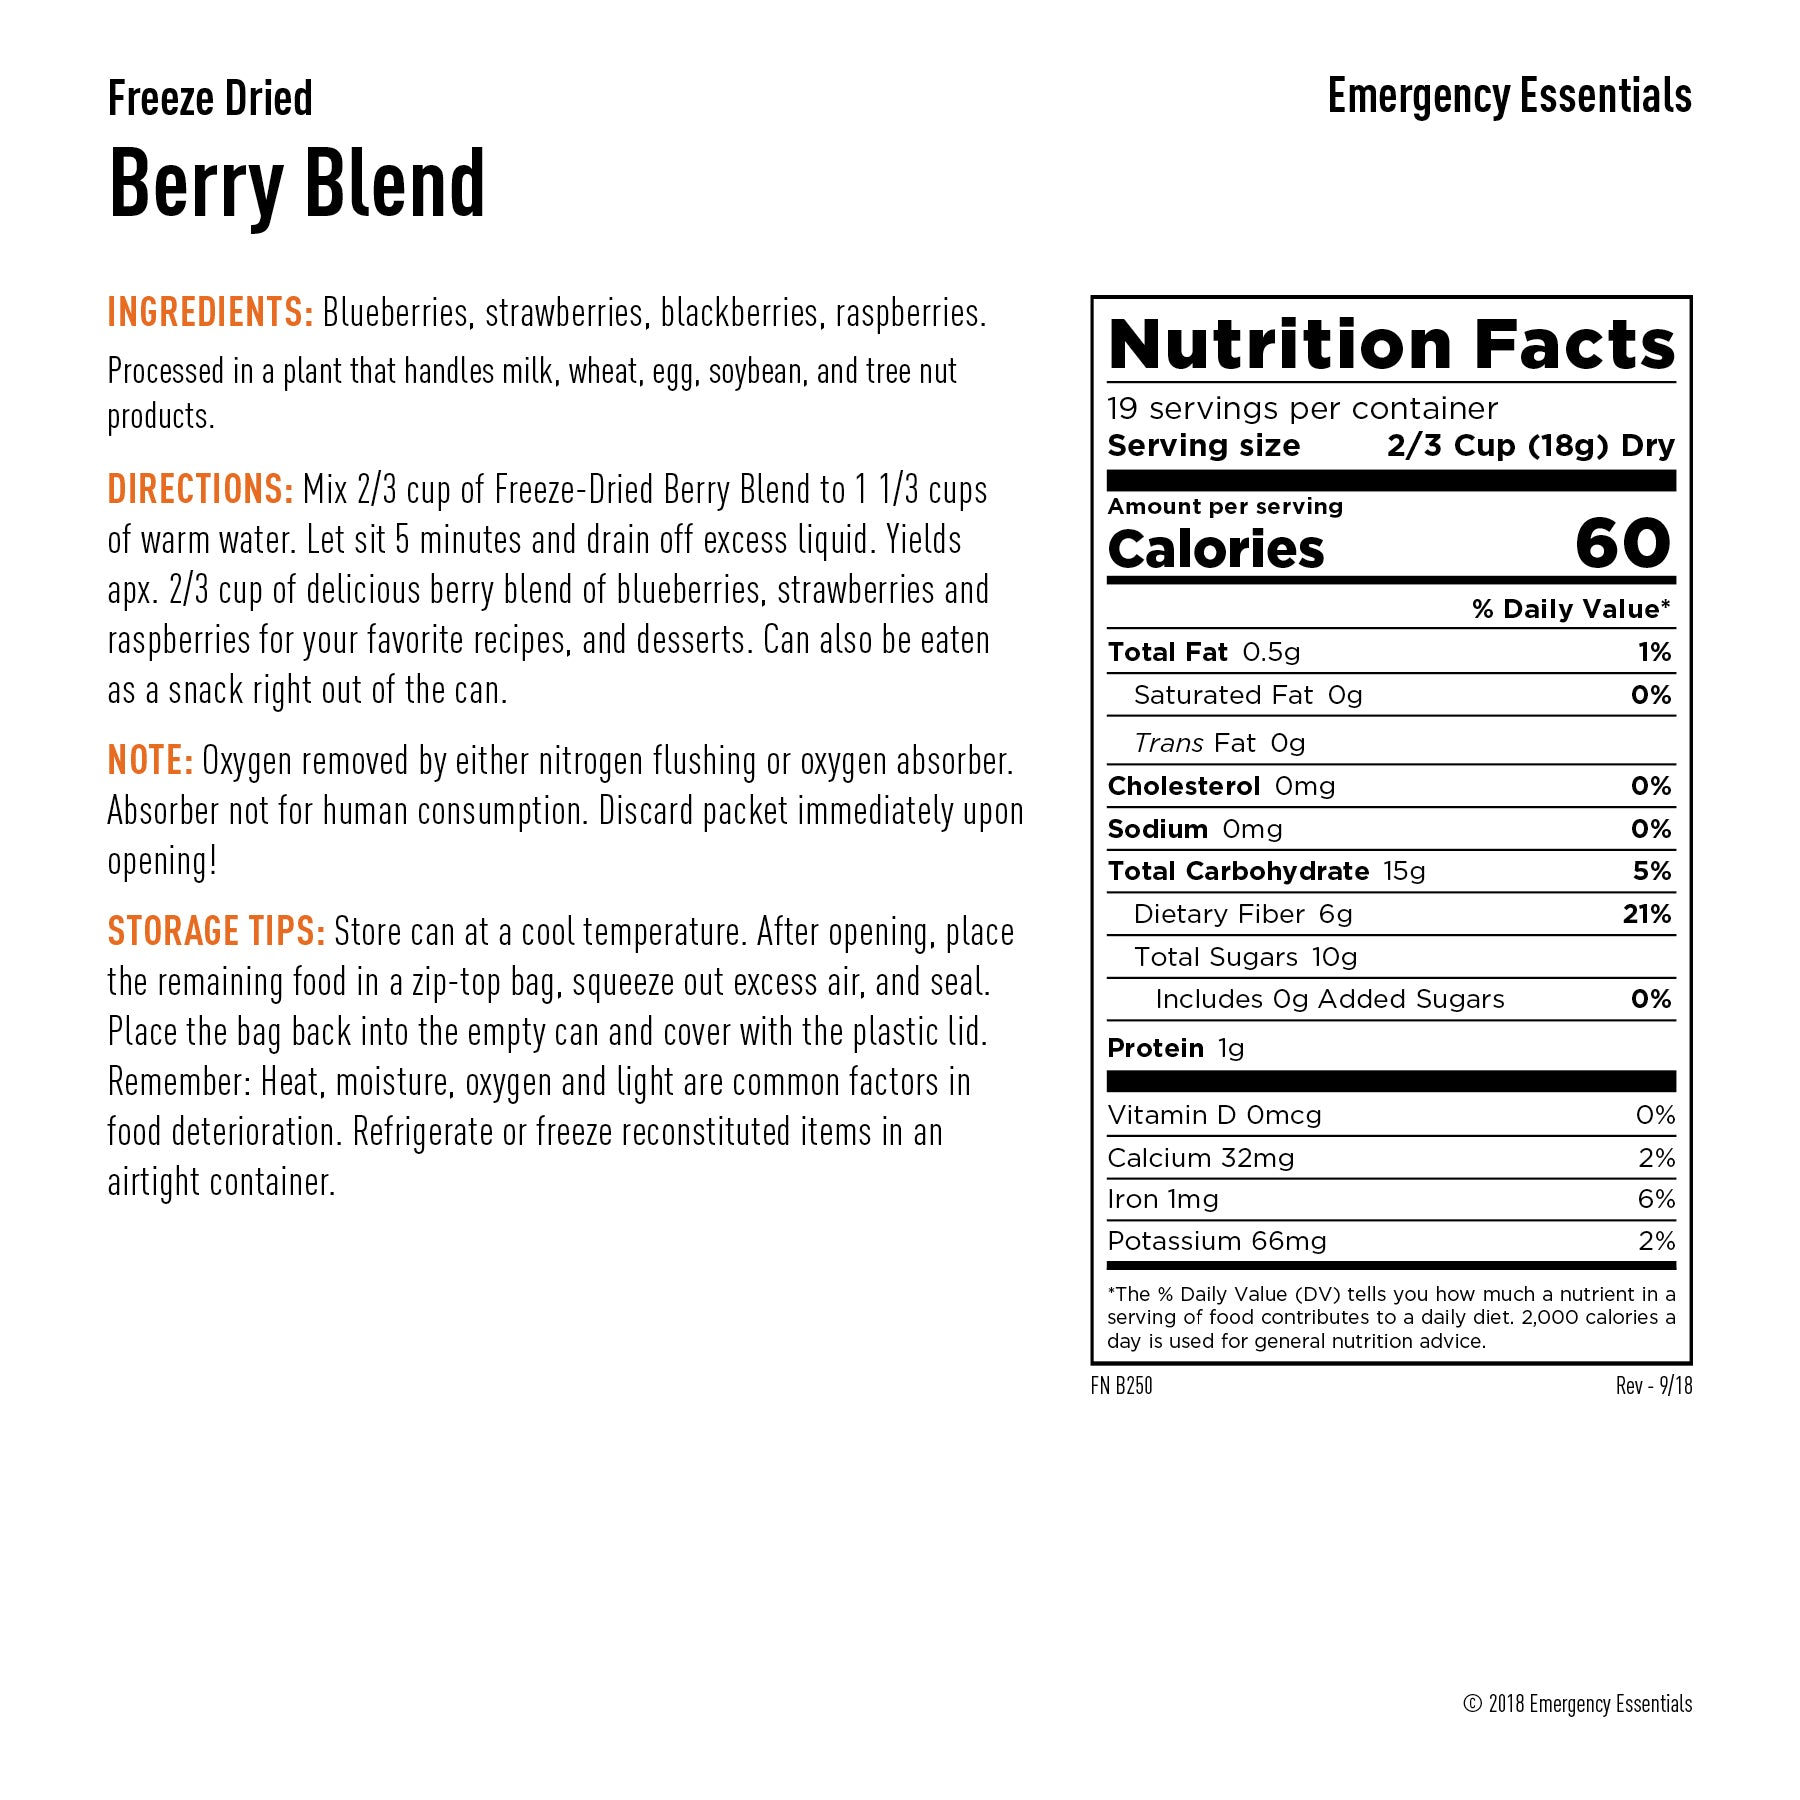 berry blend nutrition info, ingredients, and preparation directions